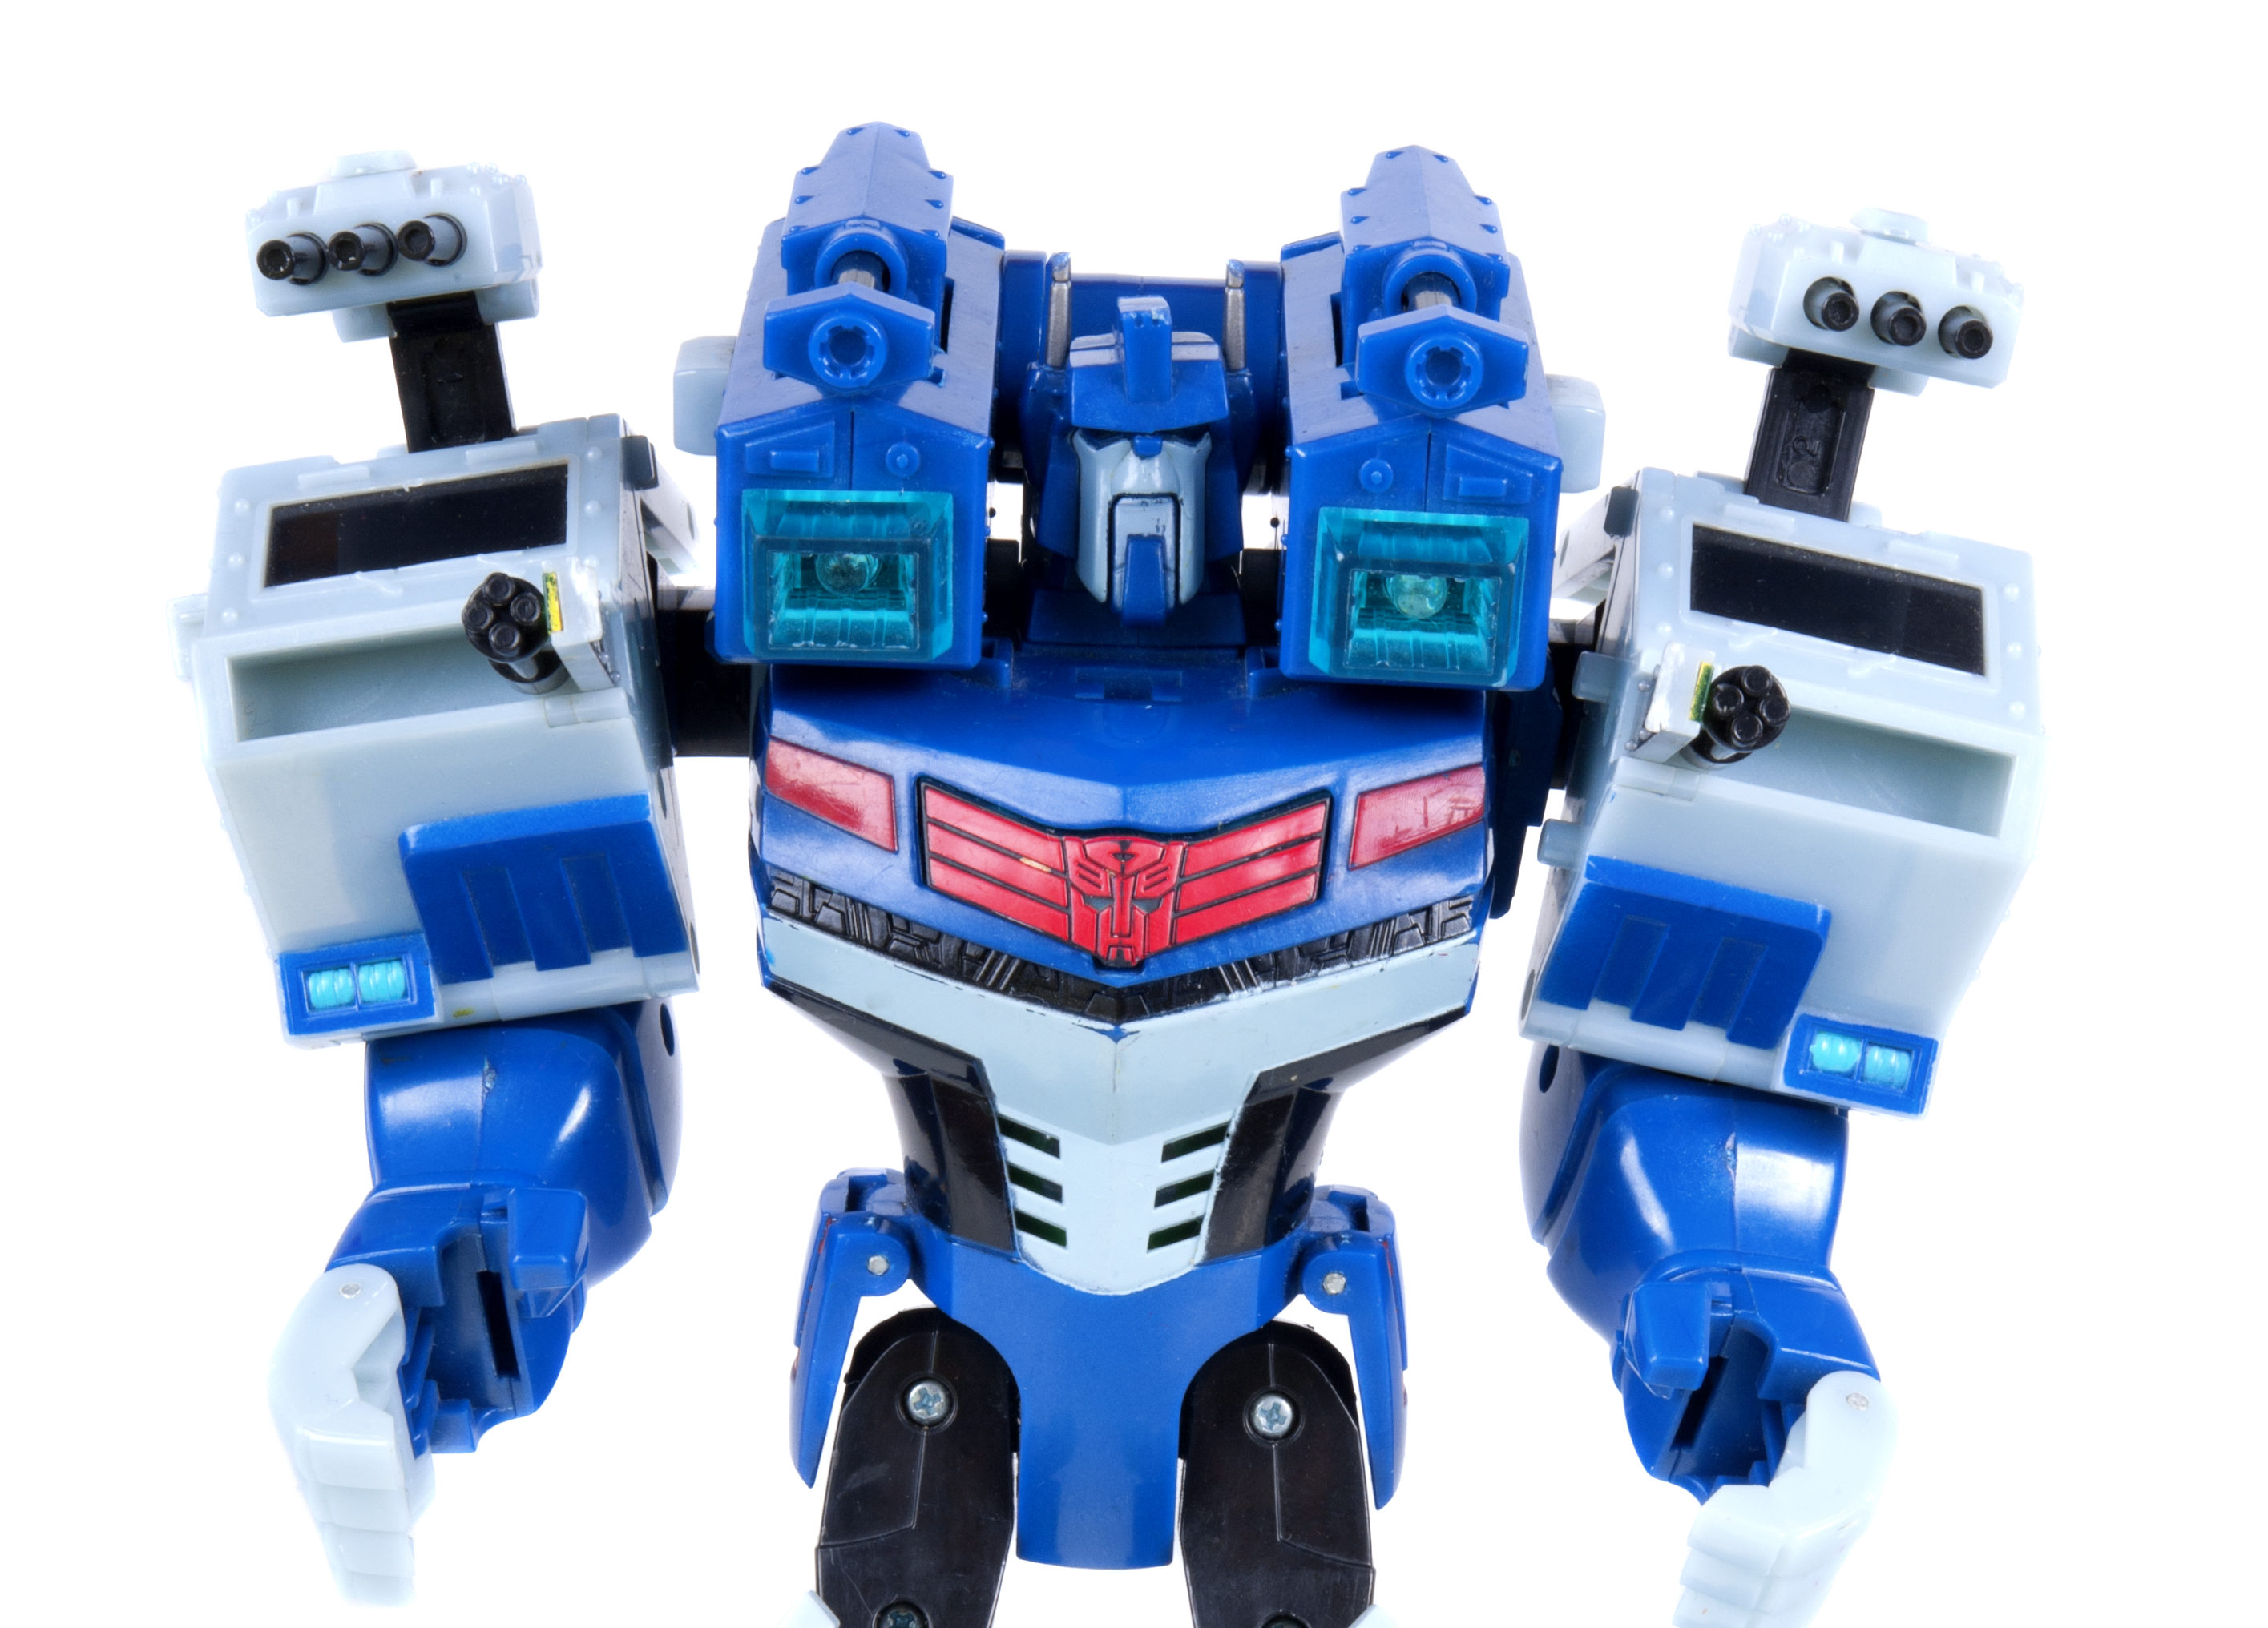 Generation 1 Ultra Magnus in red and blue with a Transformers logo on his chest plate